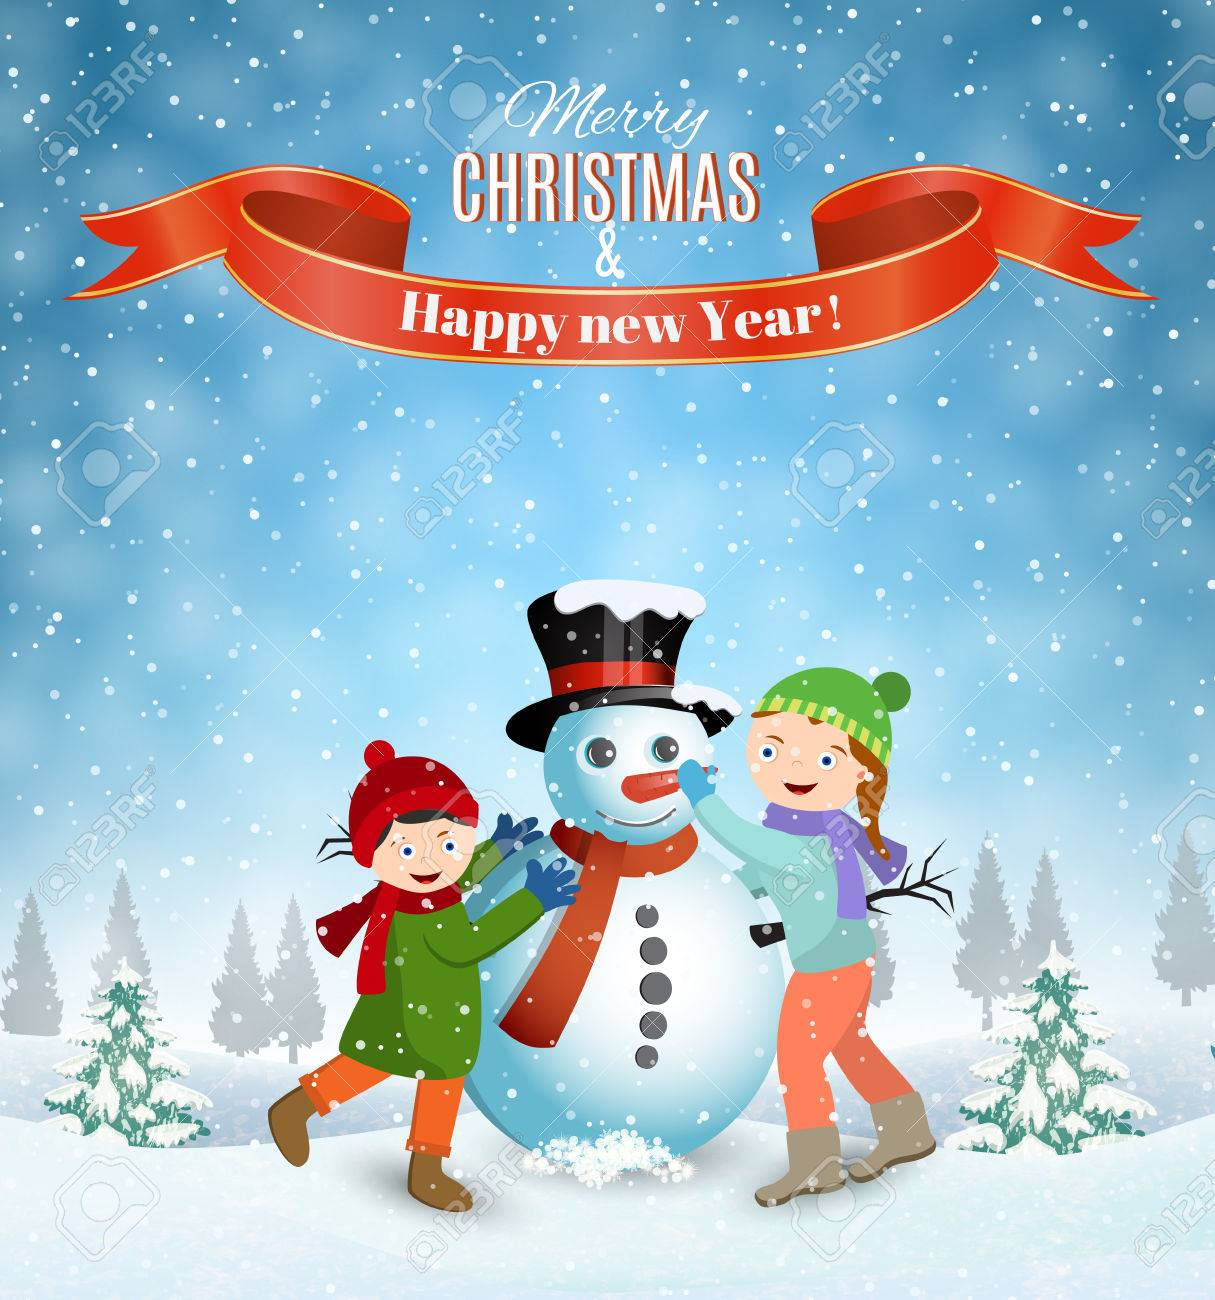 Happy New Year And Merry Christmas Greeting Card Winter Fun